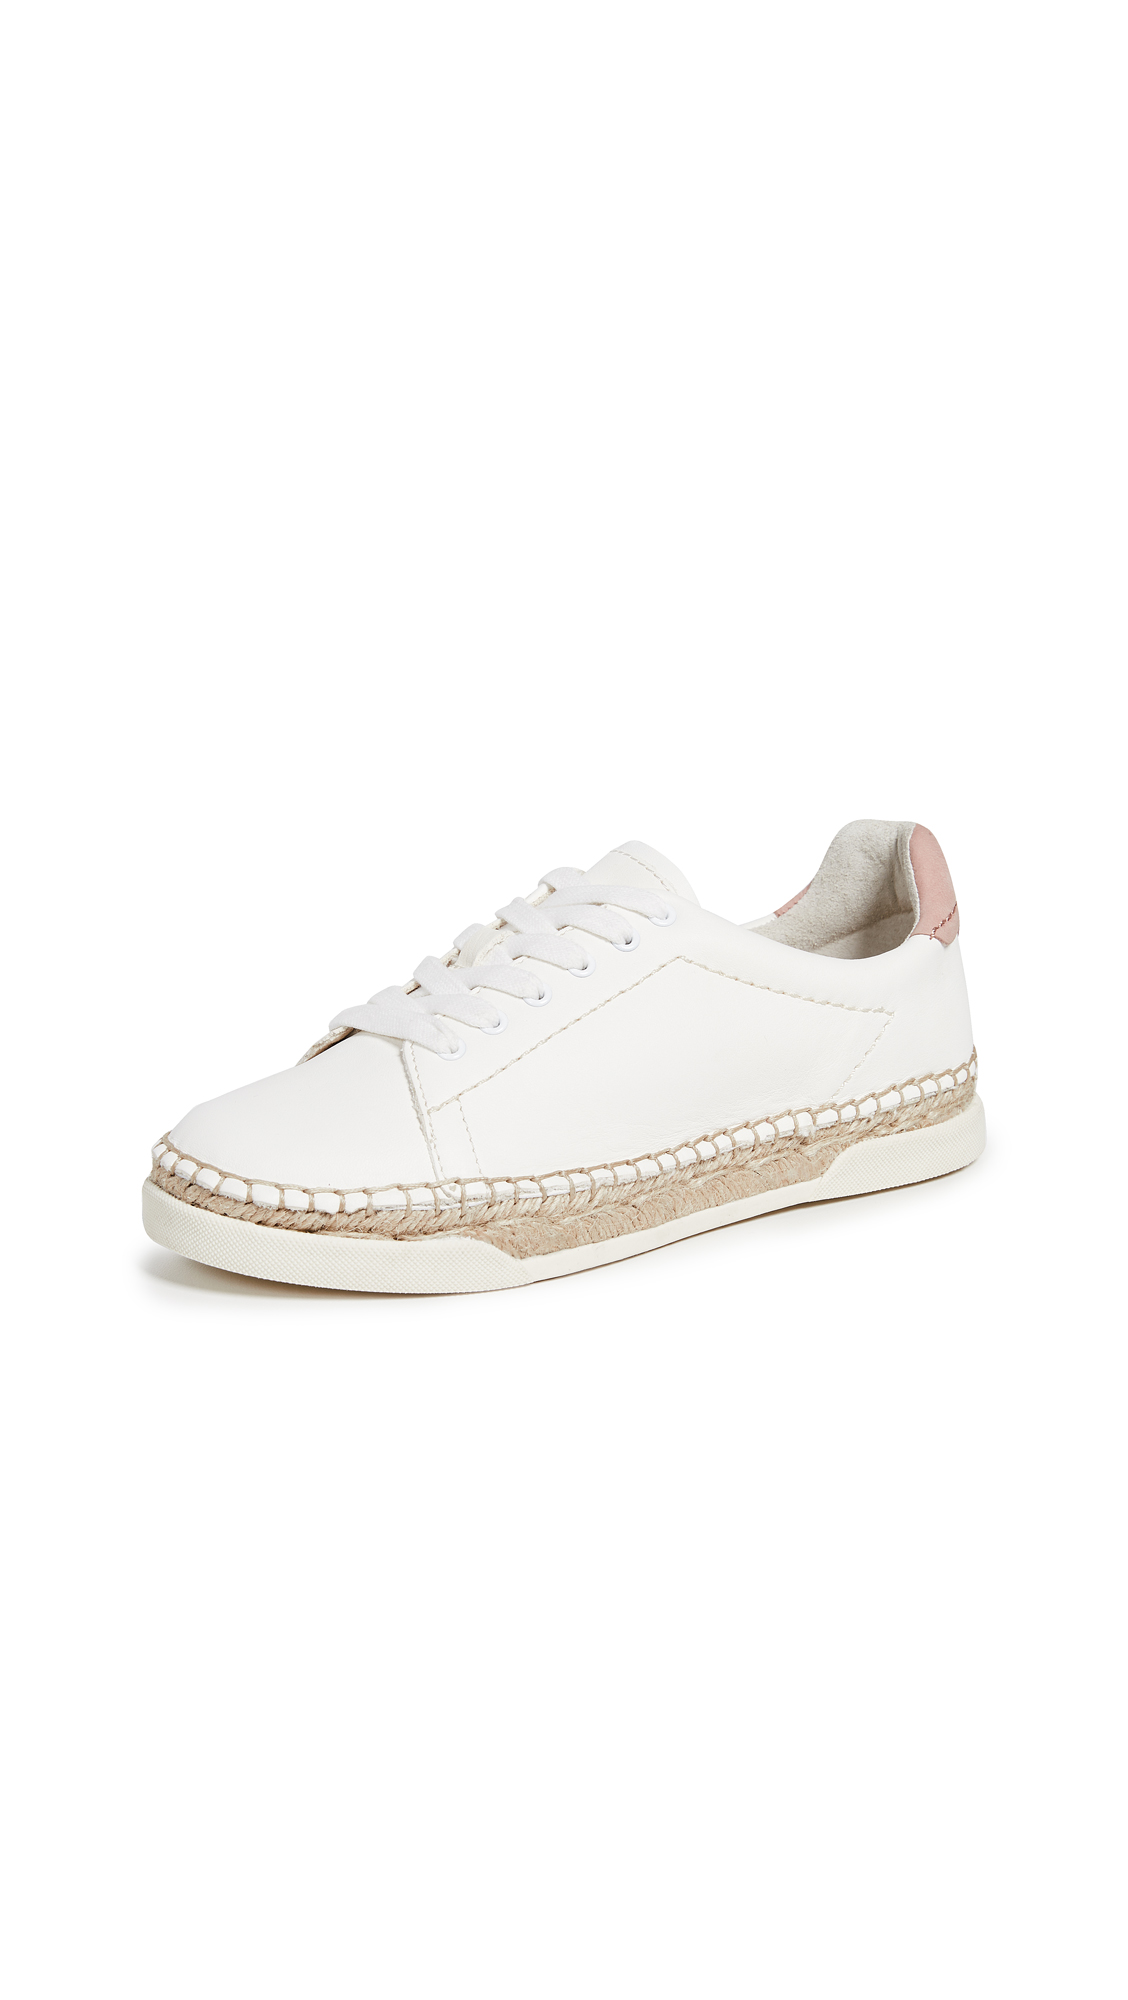 Dolce Vita Madox Lace Up Espadrilles - White